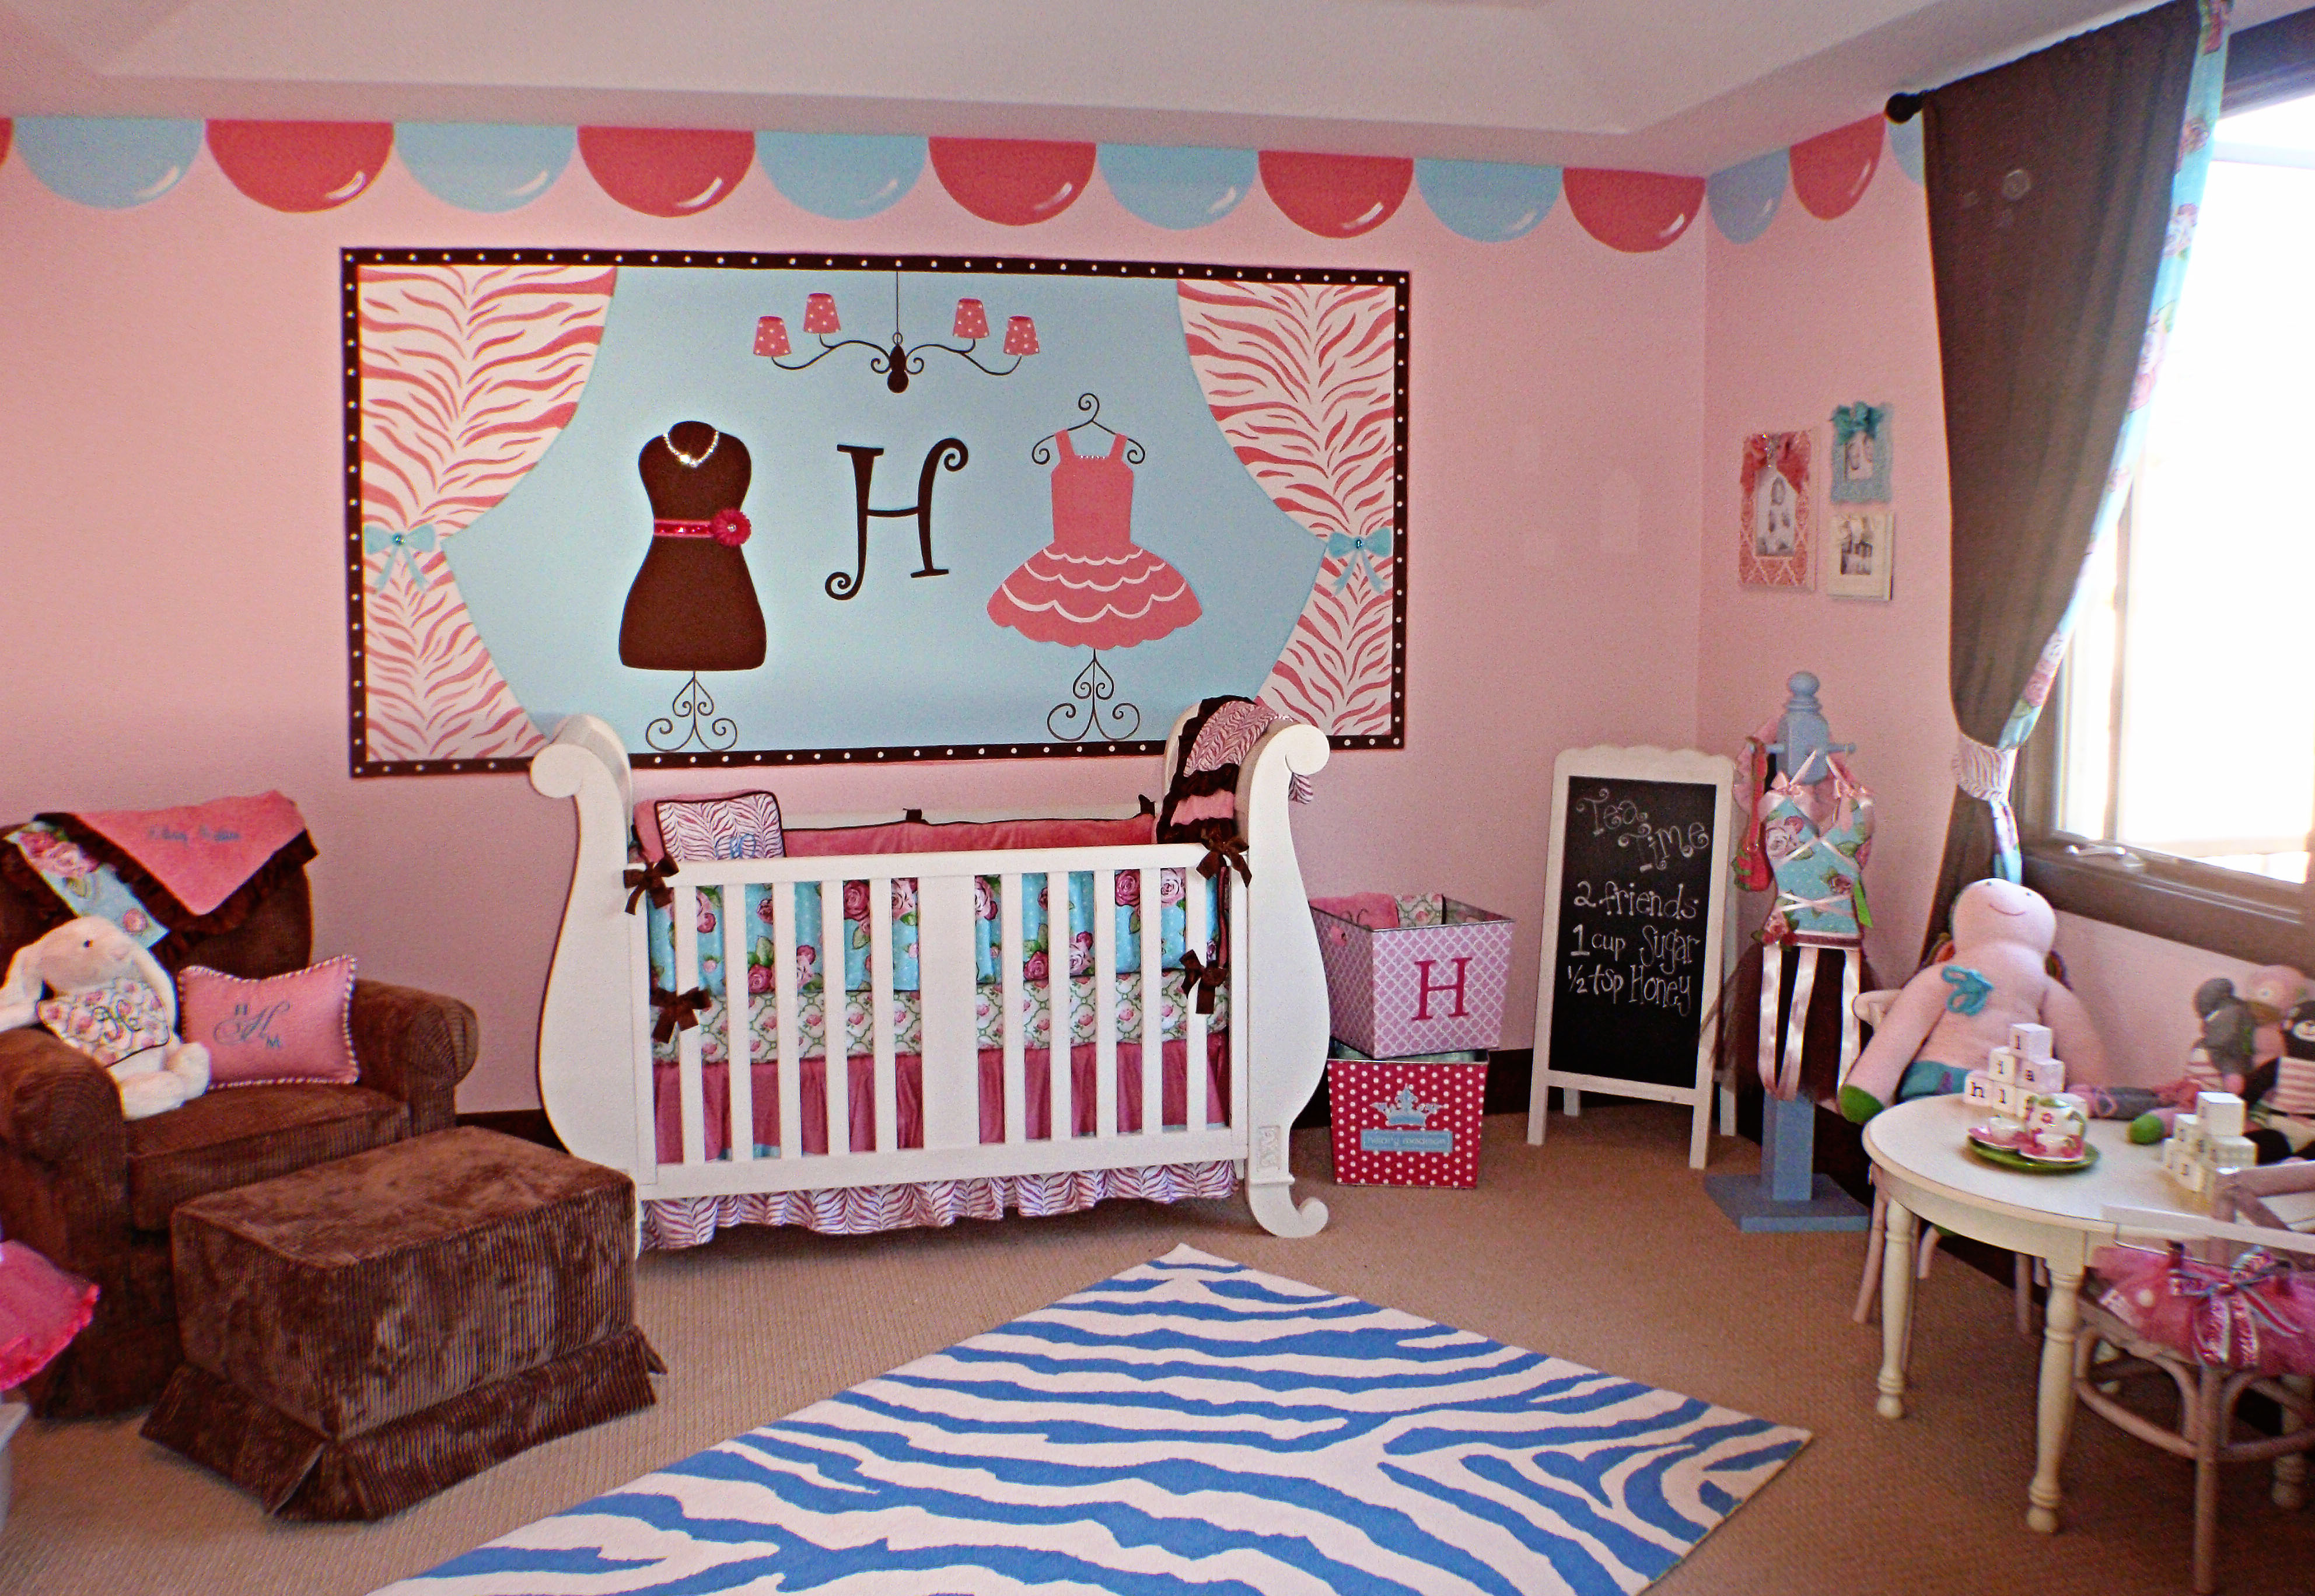 Baby escapes crib youtube - Gorgeous Interior Design Ideas For Baby Rooms